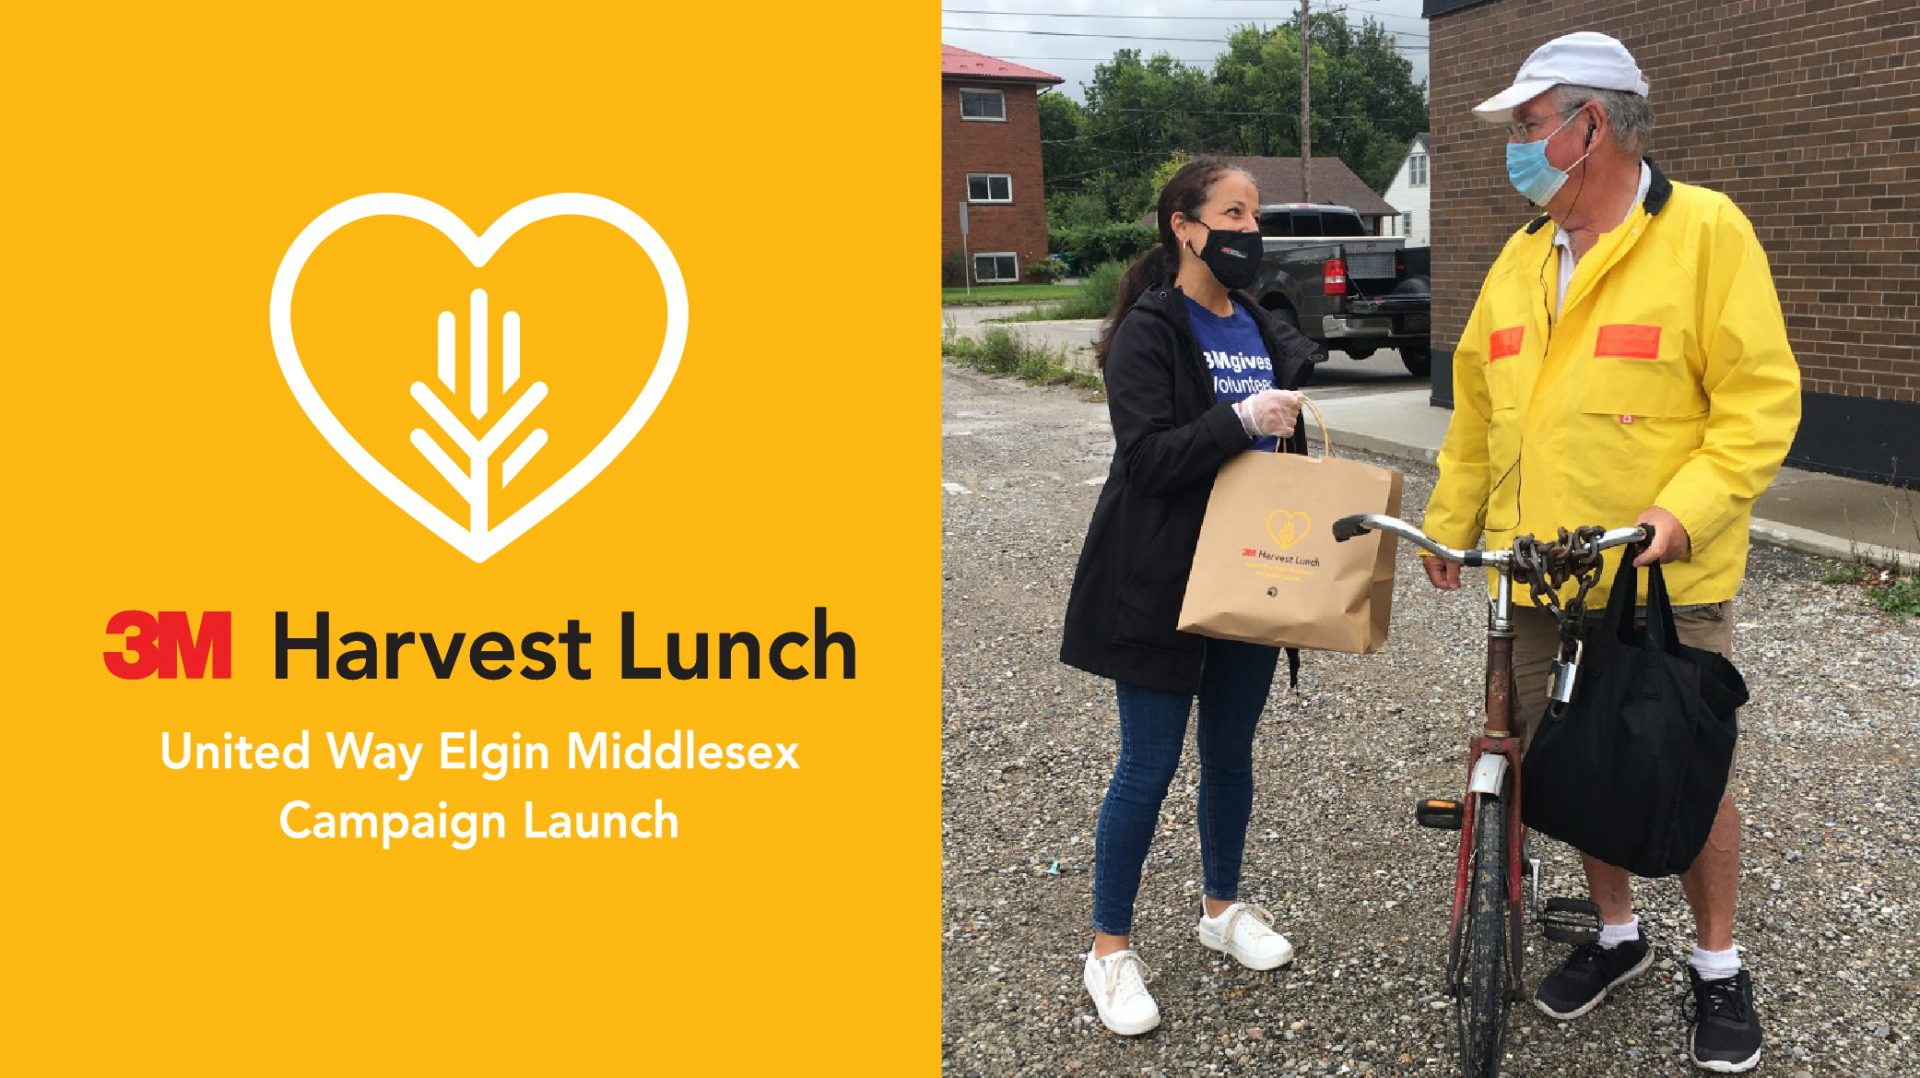 3M Harvest Lunch wrap story banner